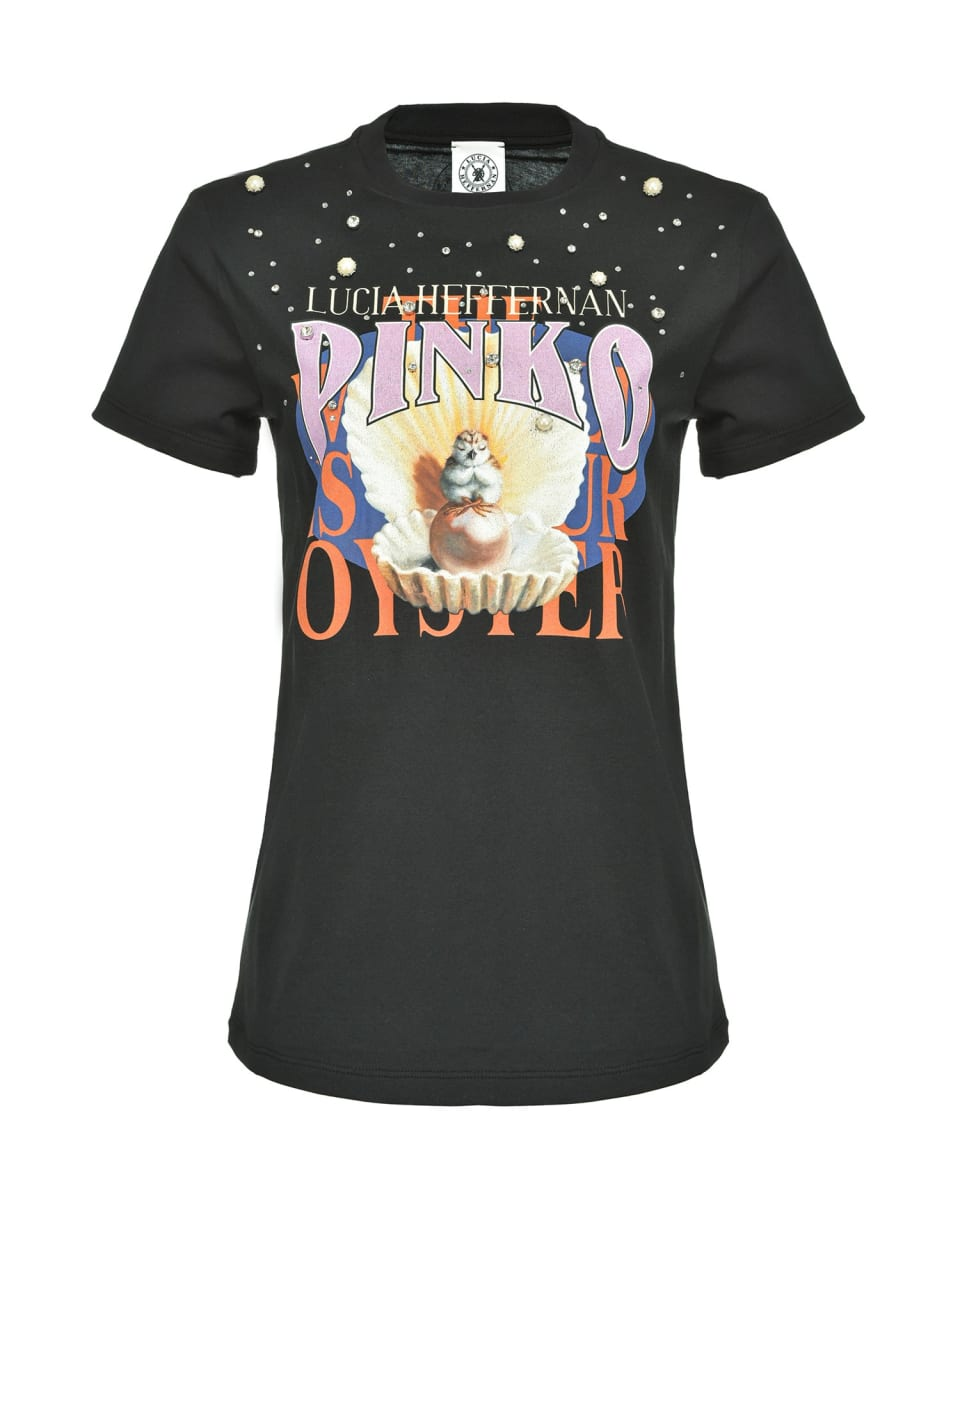 T-shirt « The World Is Your Oyster » - Pinko